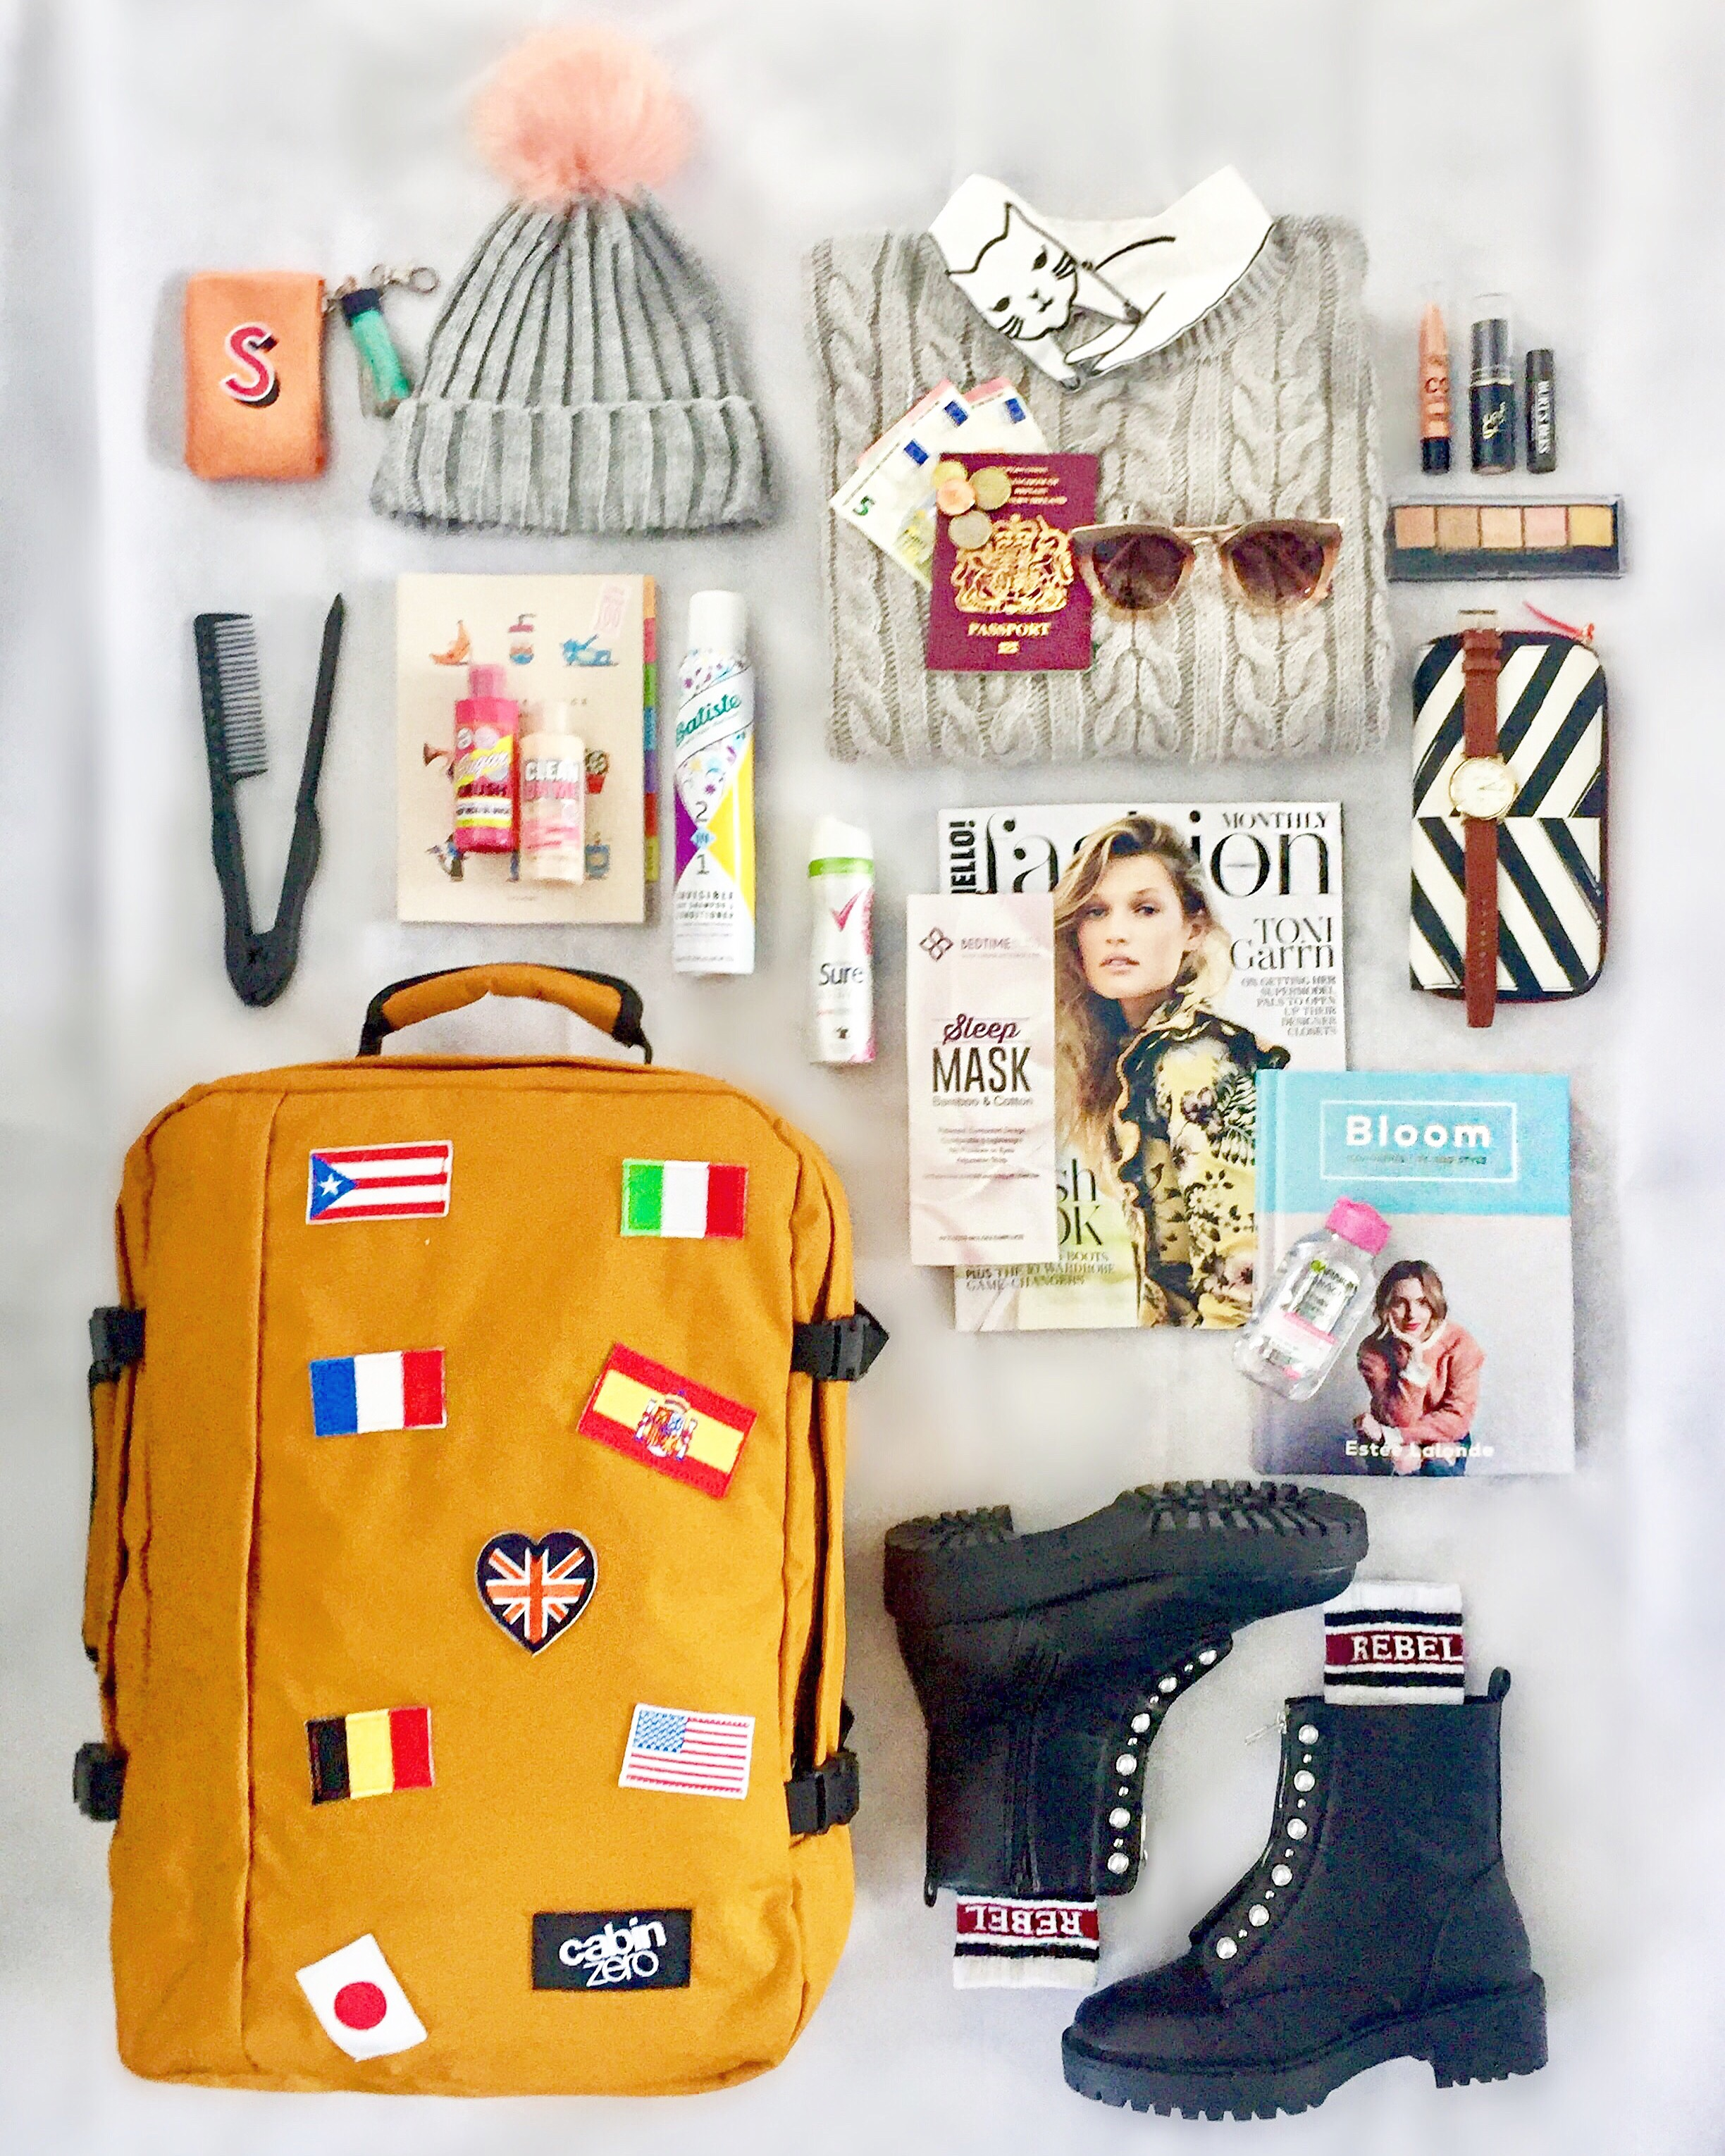 Cabin Zero flags bag luggage packing flatlay via Always a Blue Sky Girl style travel fashion lifestyle blog